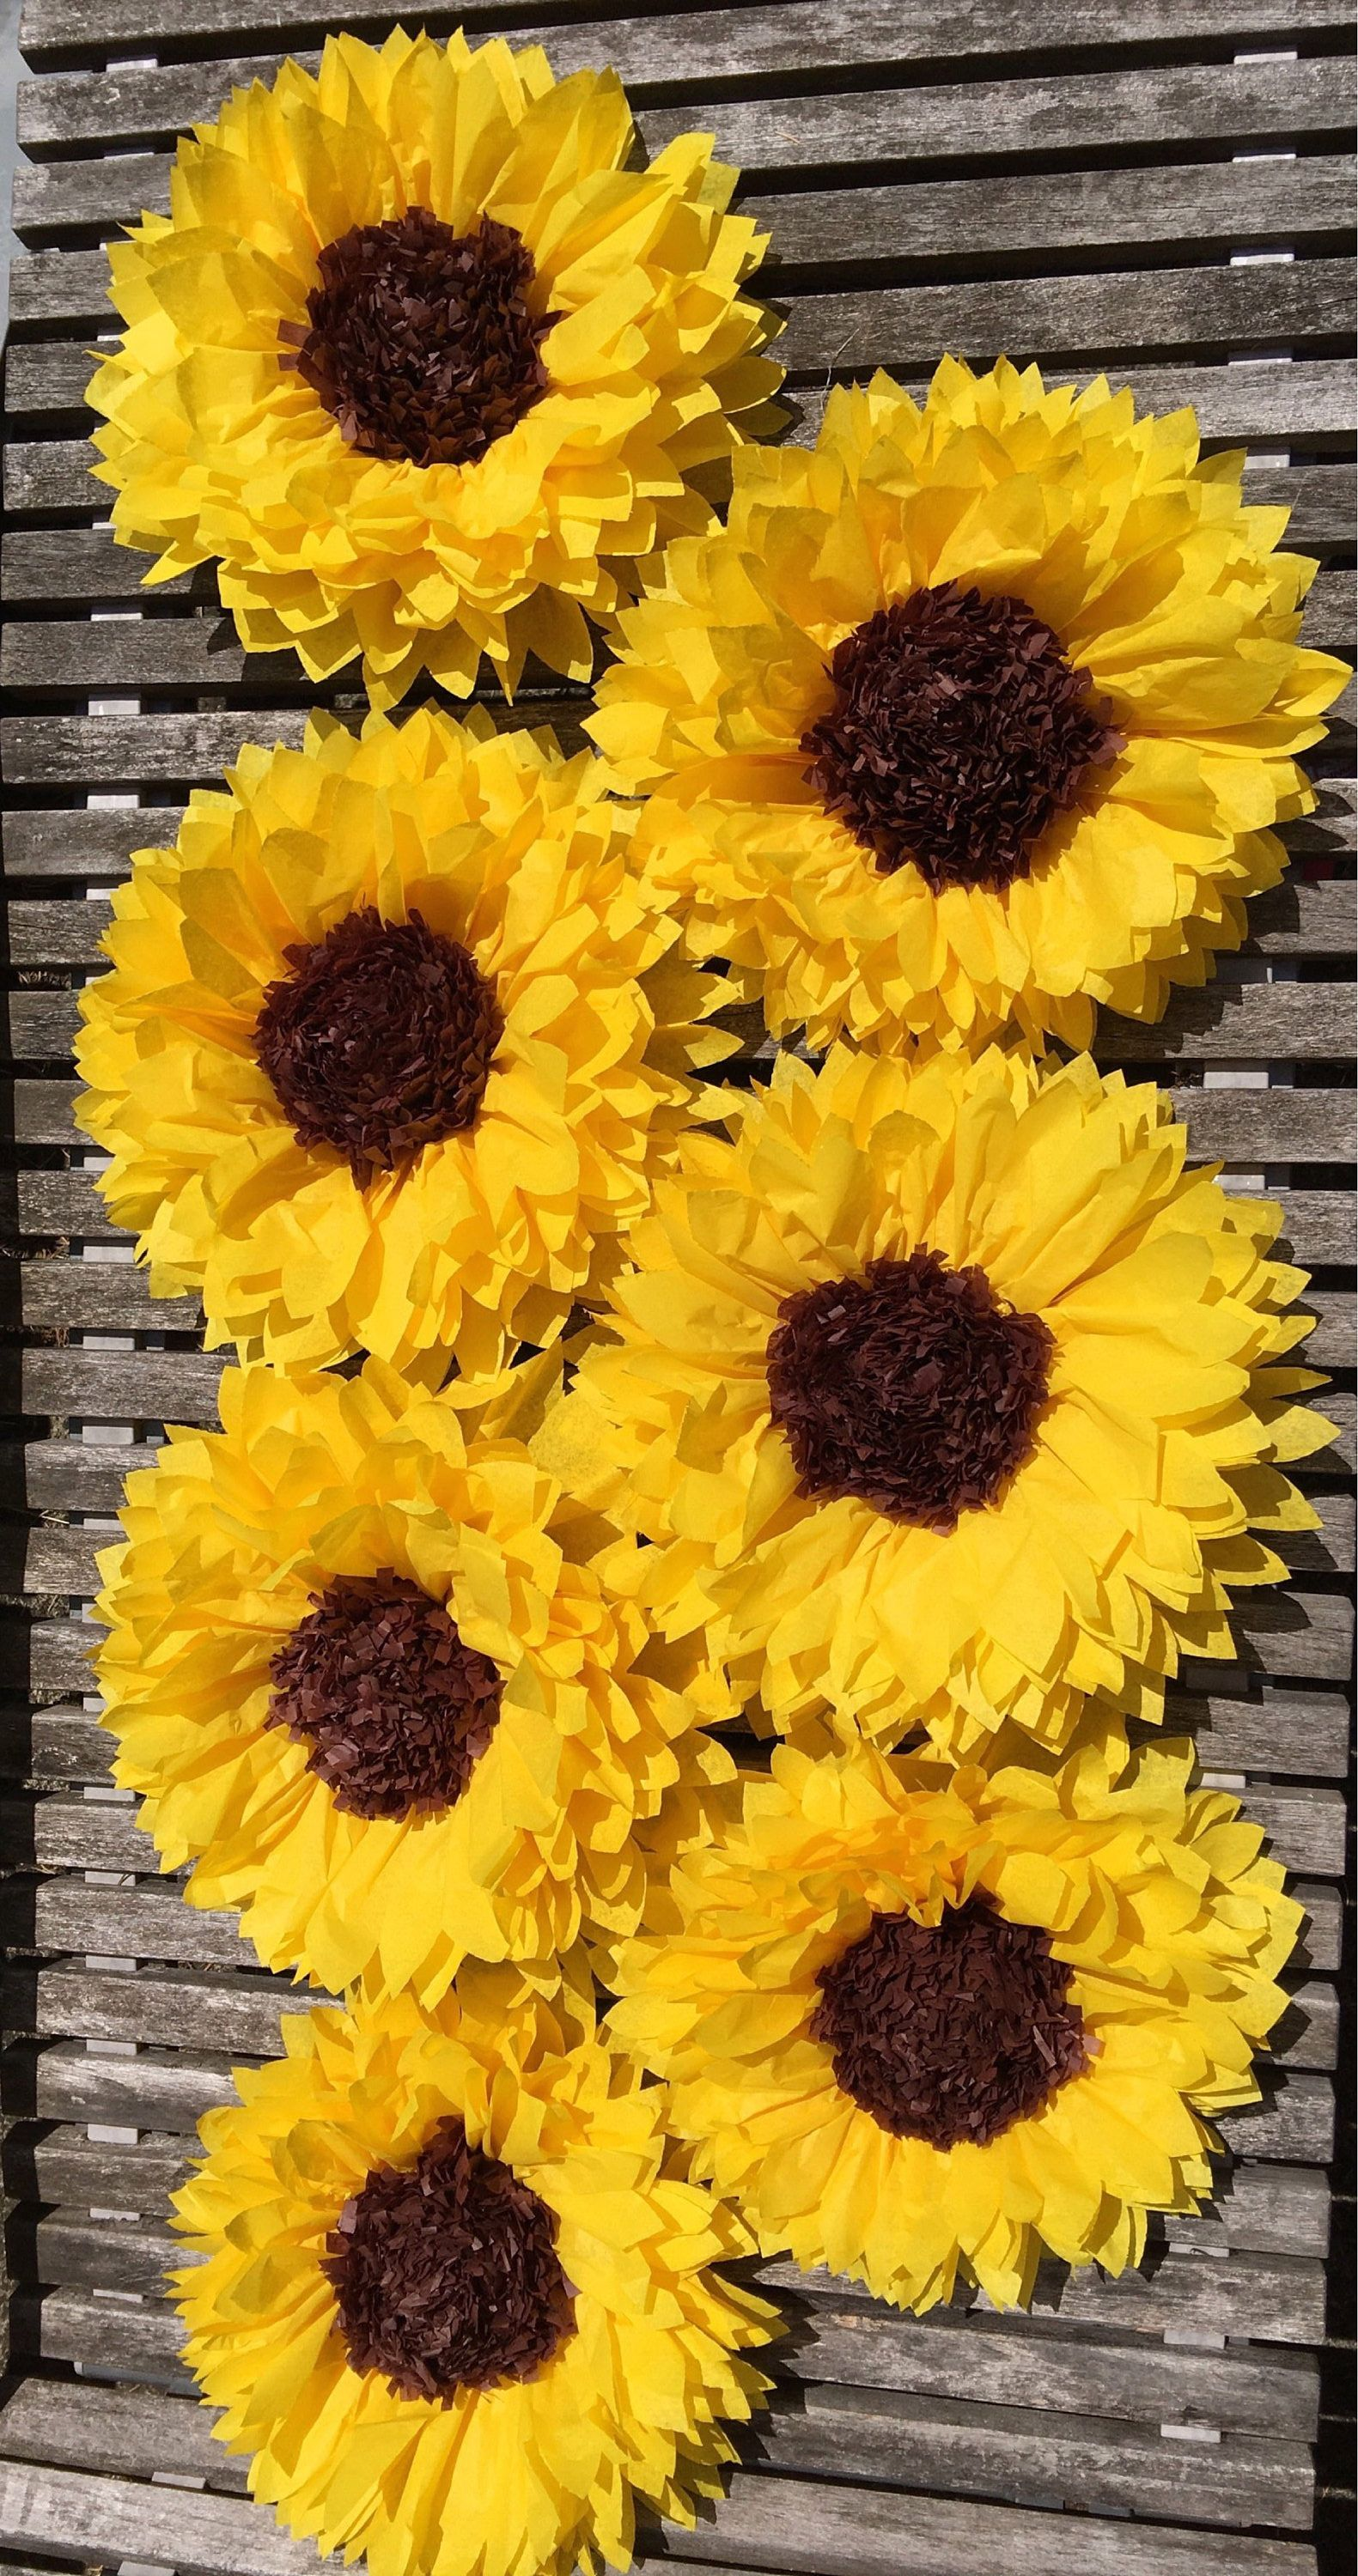 Large tissue paper sunflowers for rustic wedding decor